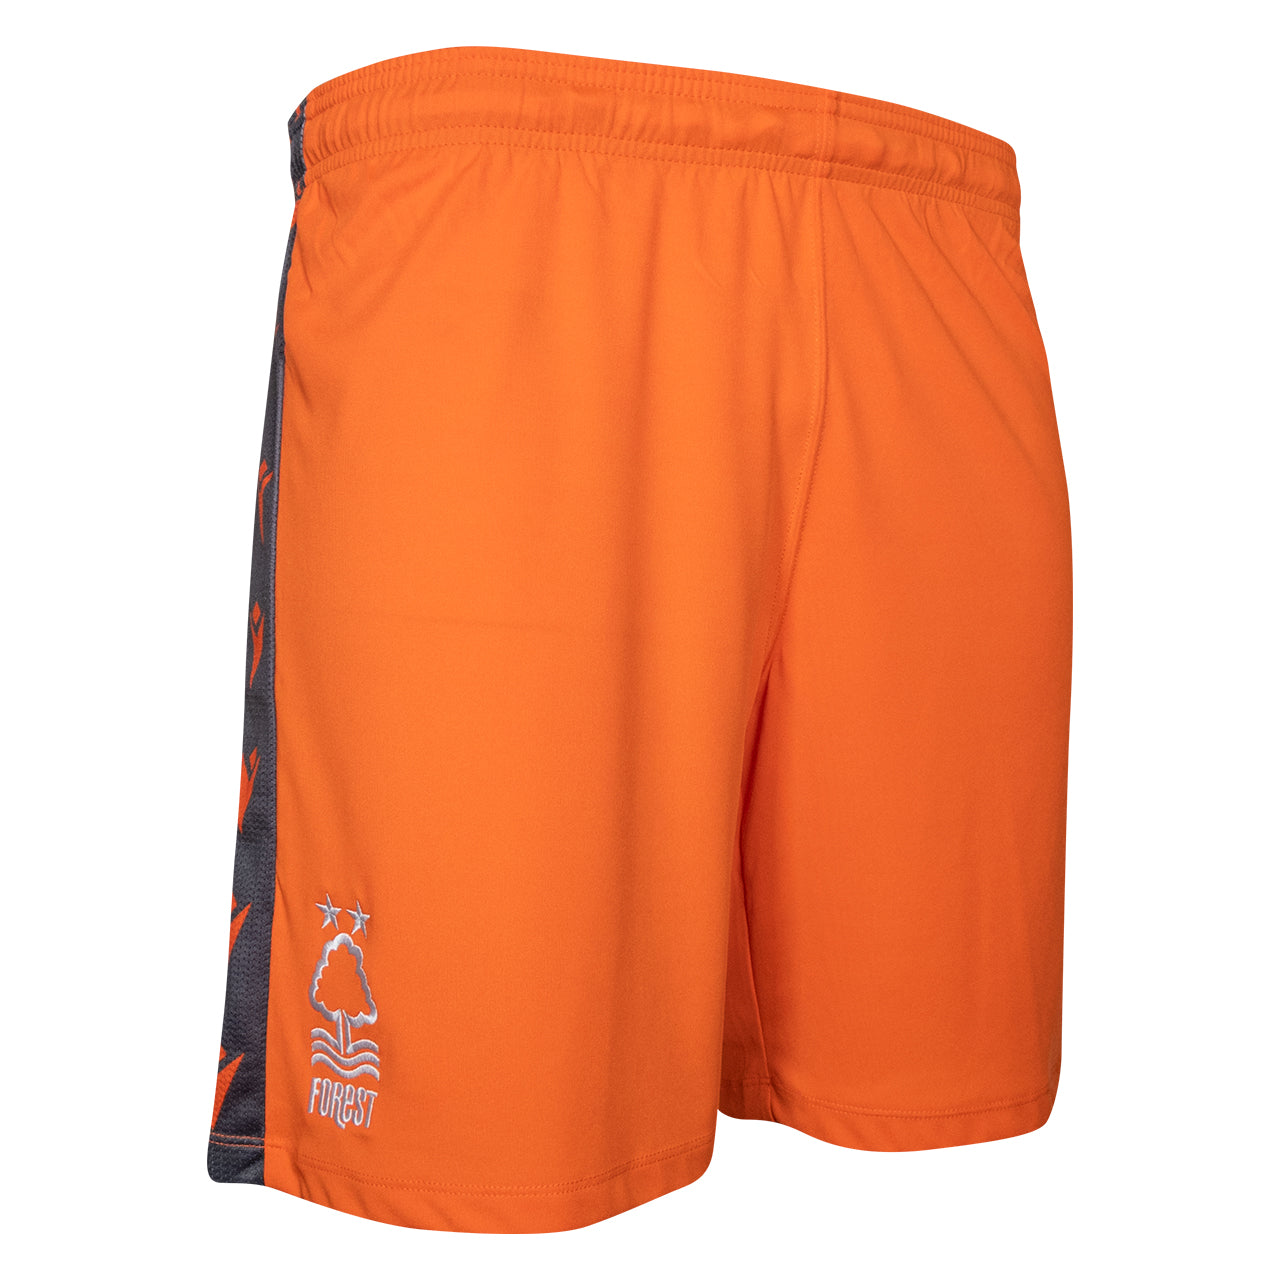 NFFC Junior Orange Goalkeeper Shorts 2020/21